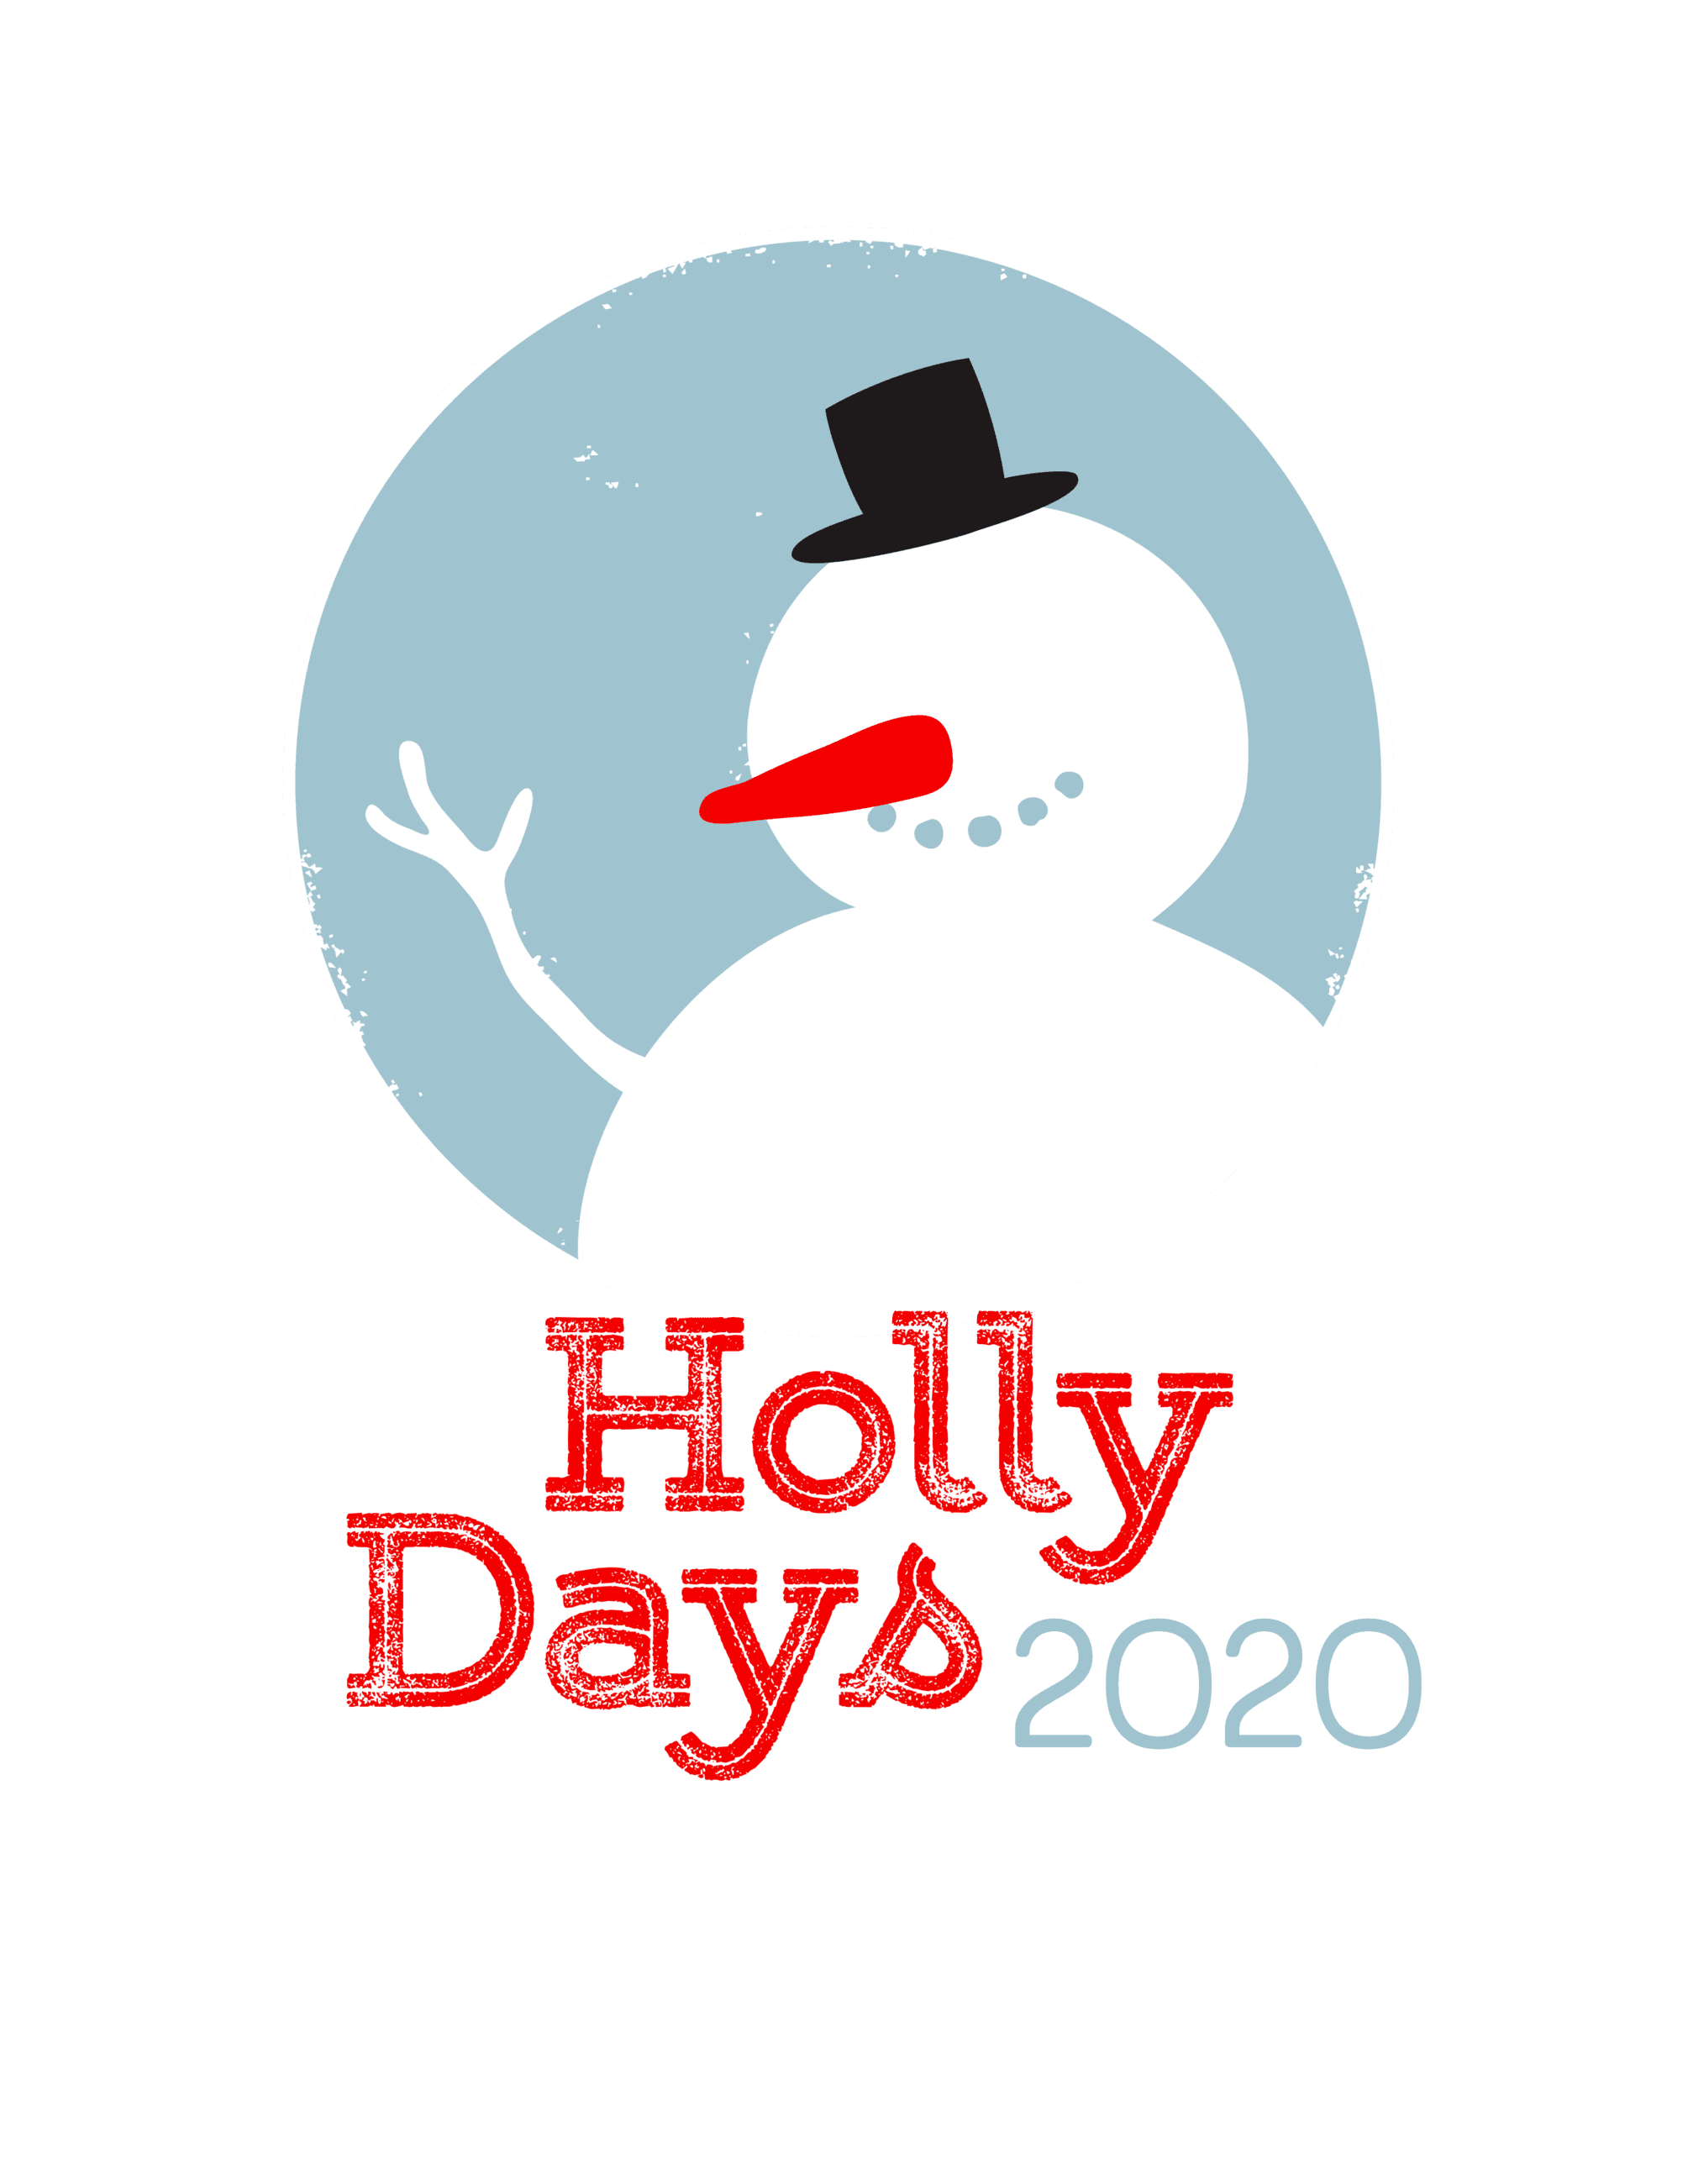 hollydays-logo-2020